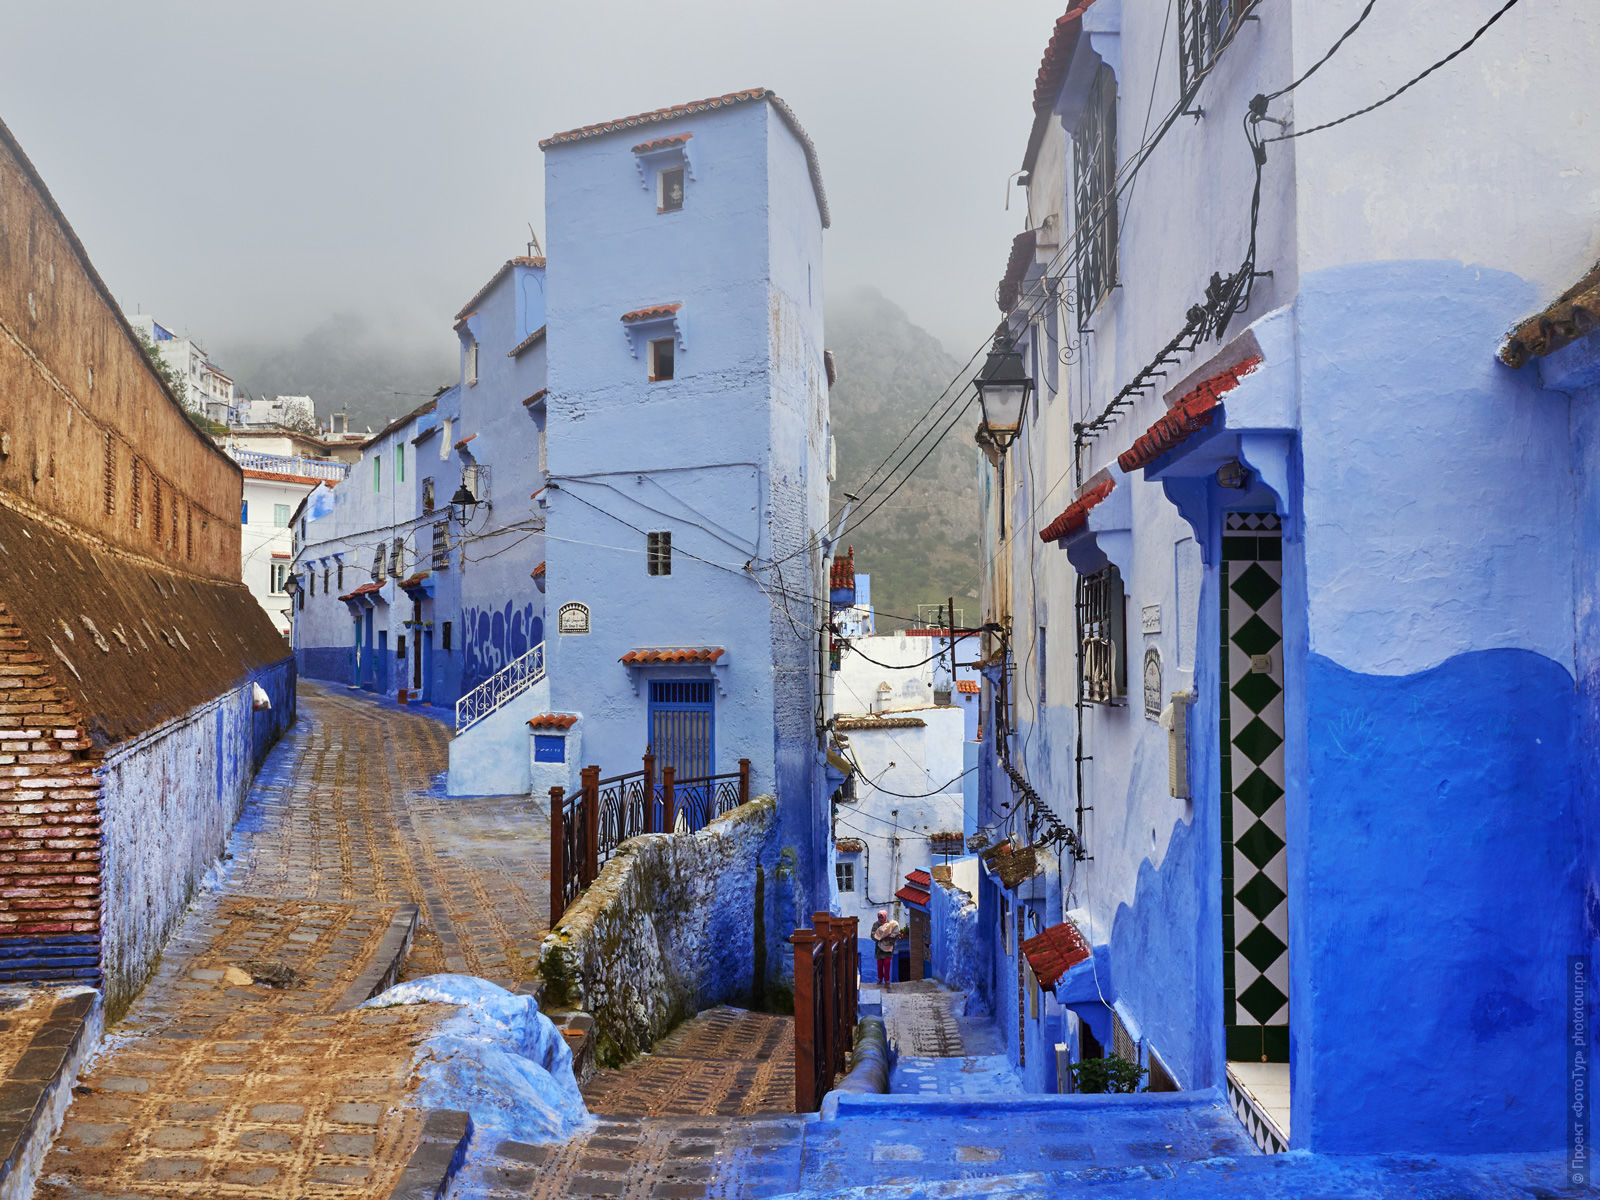 Medina of Chefchaouen, Morocco. Adventure photo tour: medina, cascades, sands and ports of Morocco, April 4 - 17, 2020.